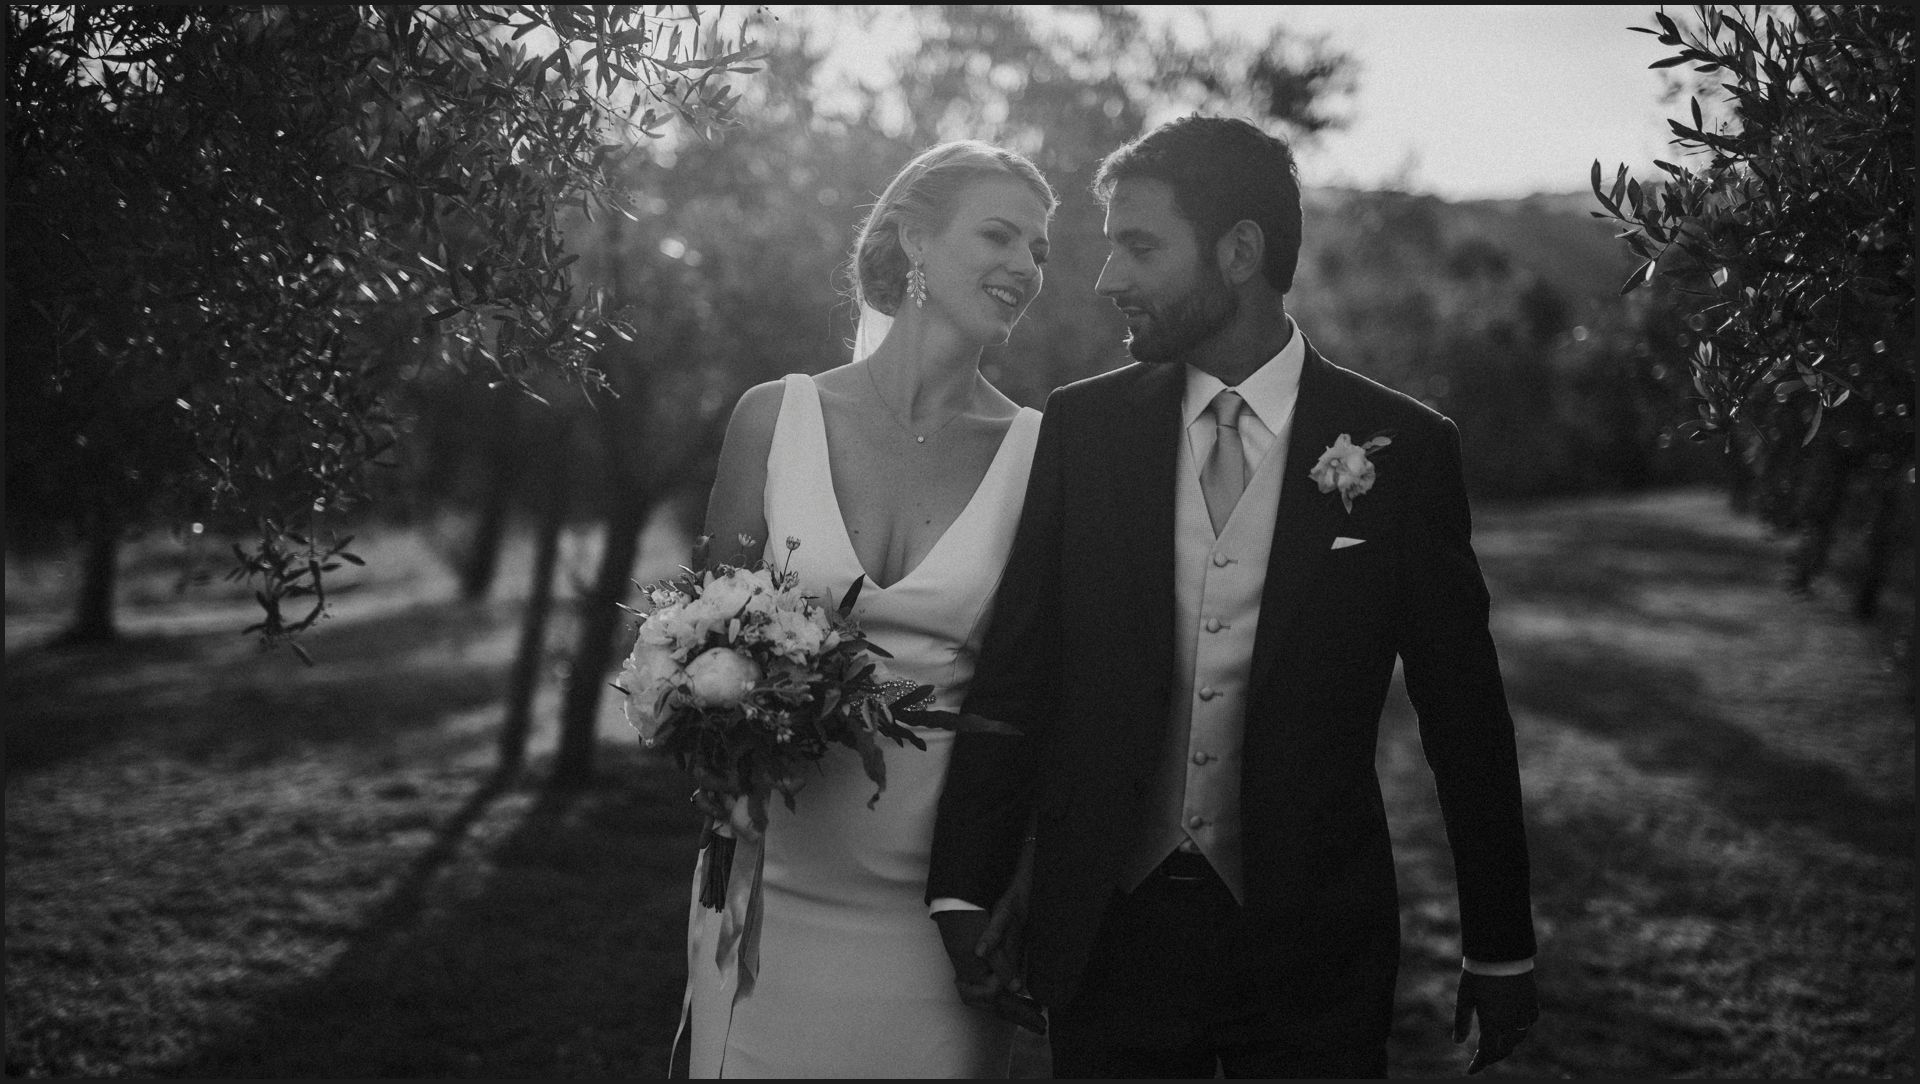 tenuta di canonica, umbria, wedding, bride, groom, love, black and white, happy